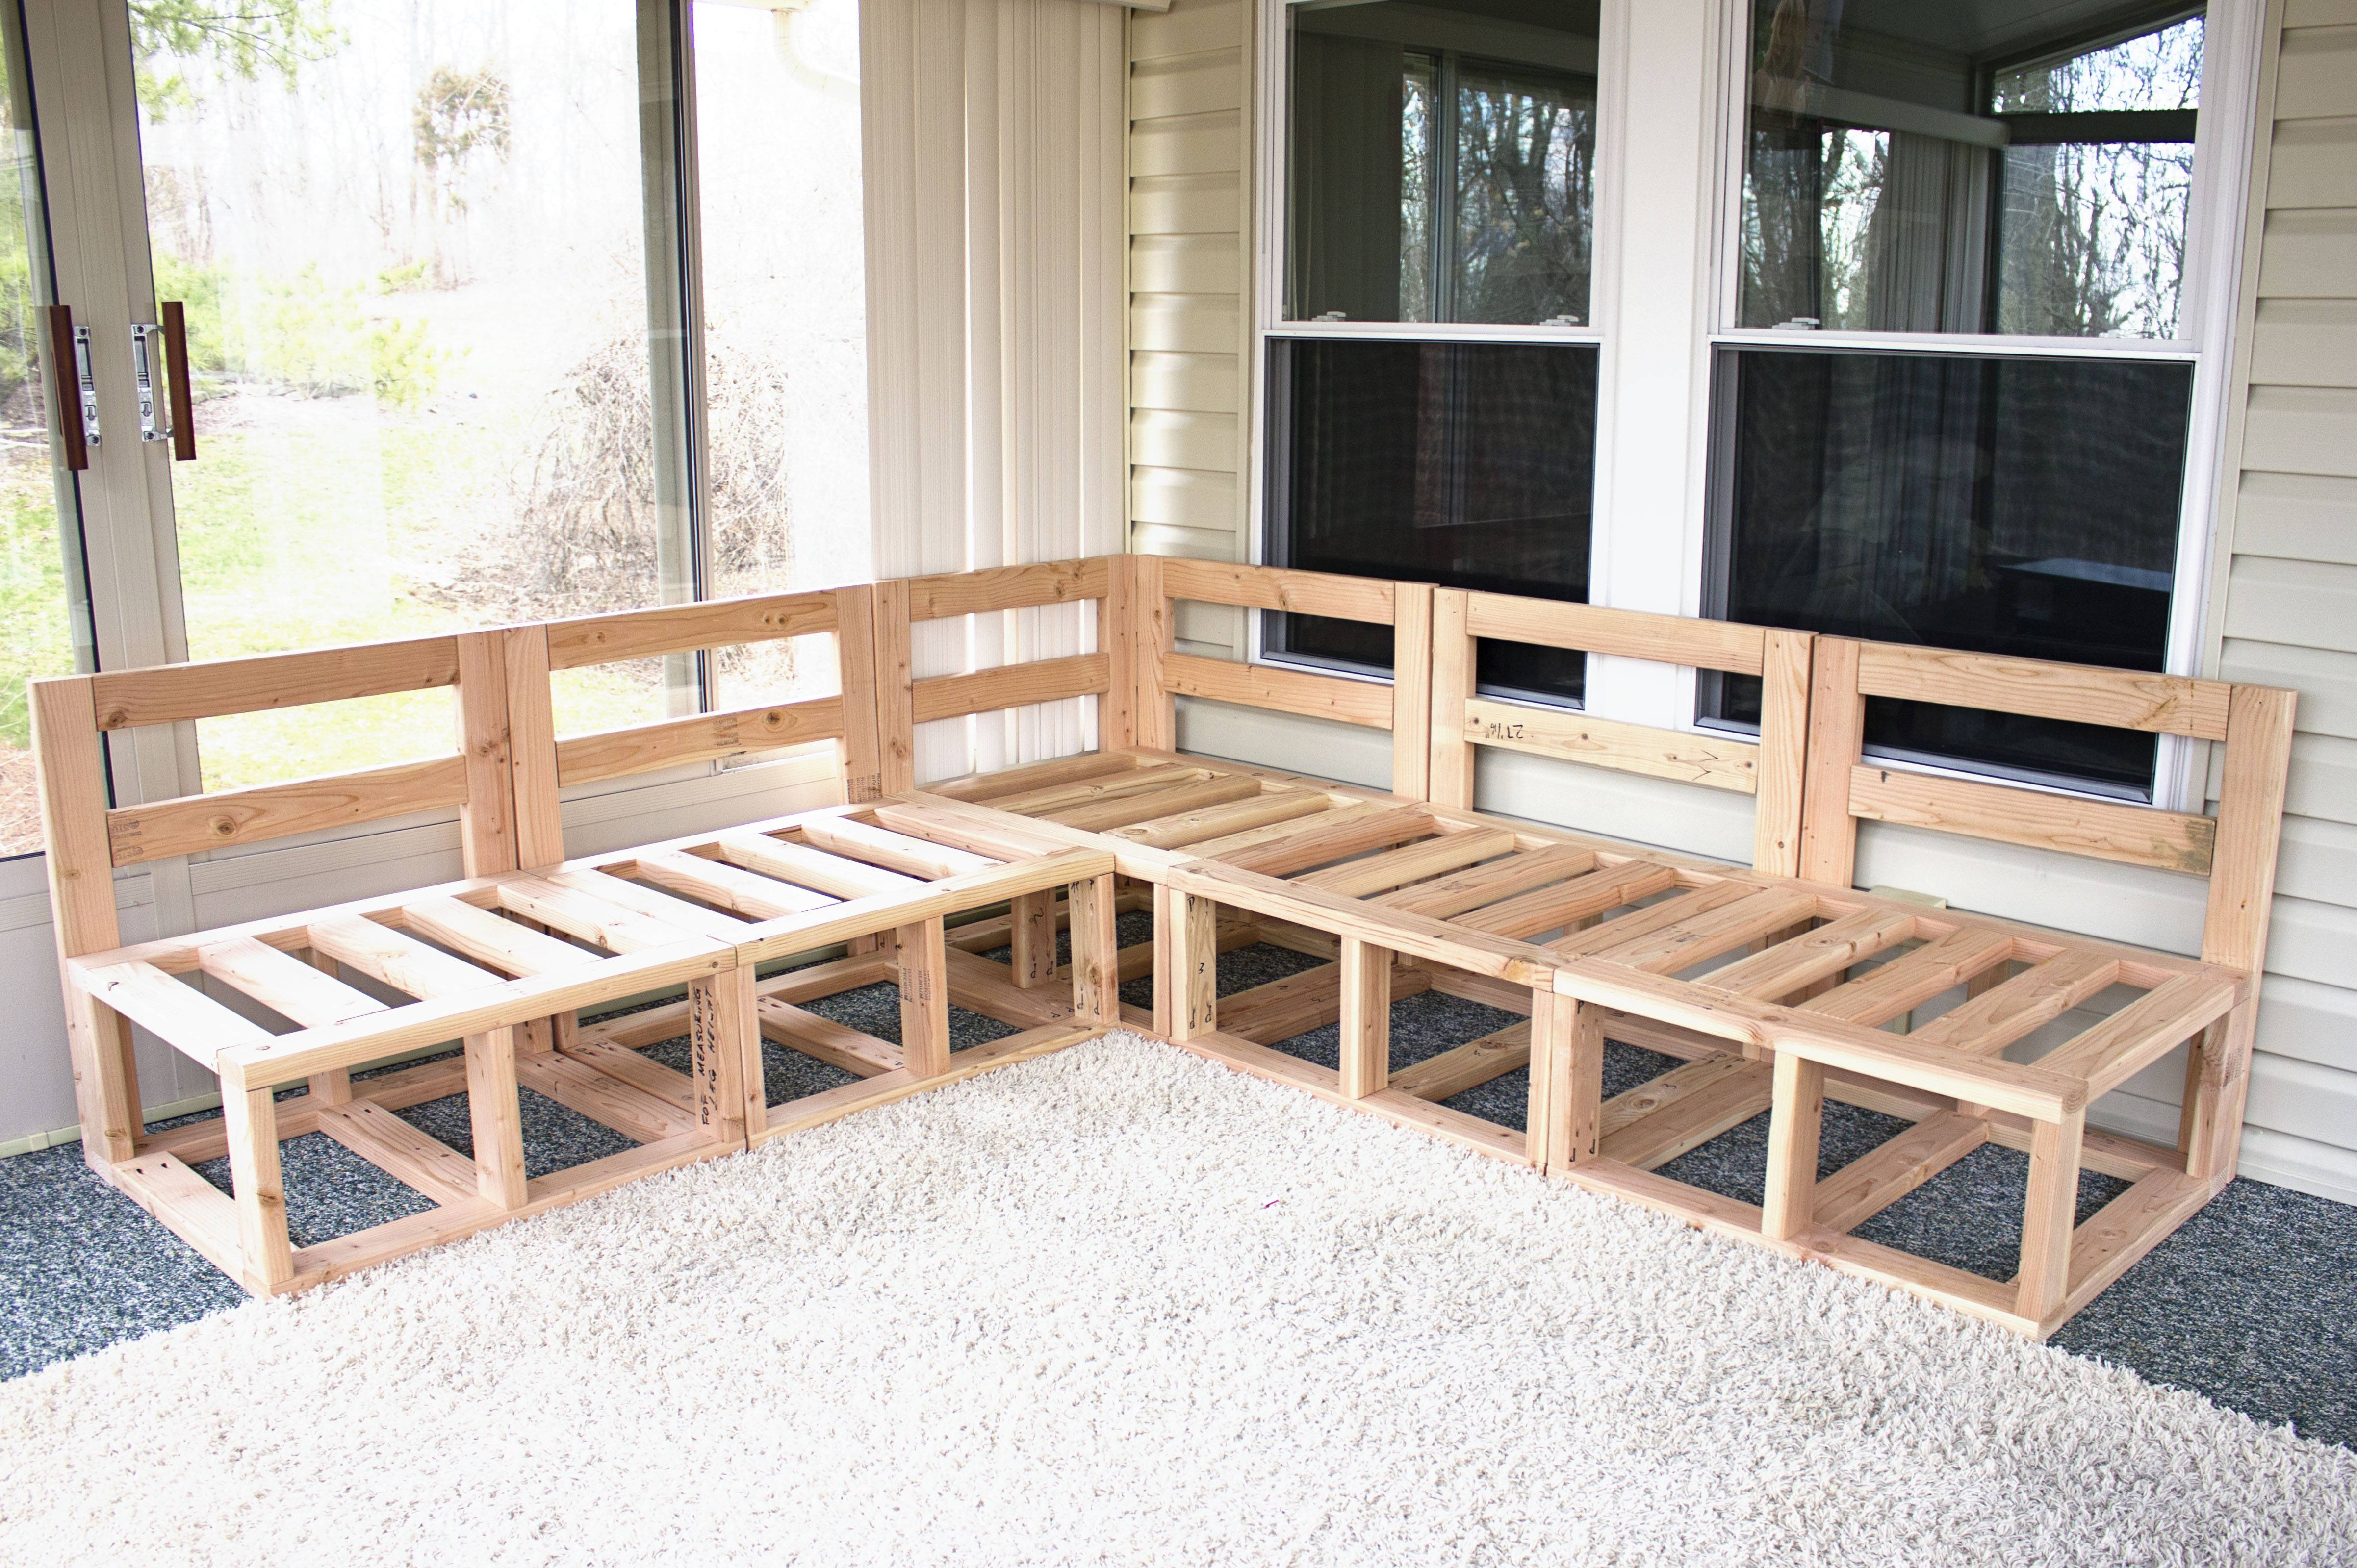 Ana White | Outdoor Sectional - Diy Projects with regard to Ana White Outdoor Sectional Sofas (Image 7 of 15)